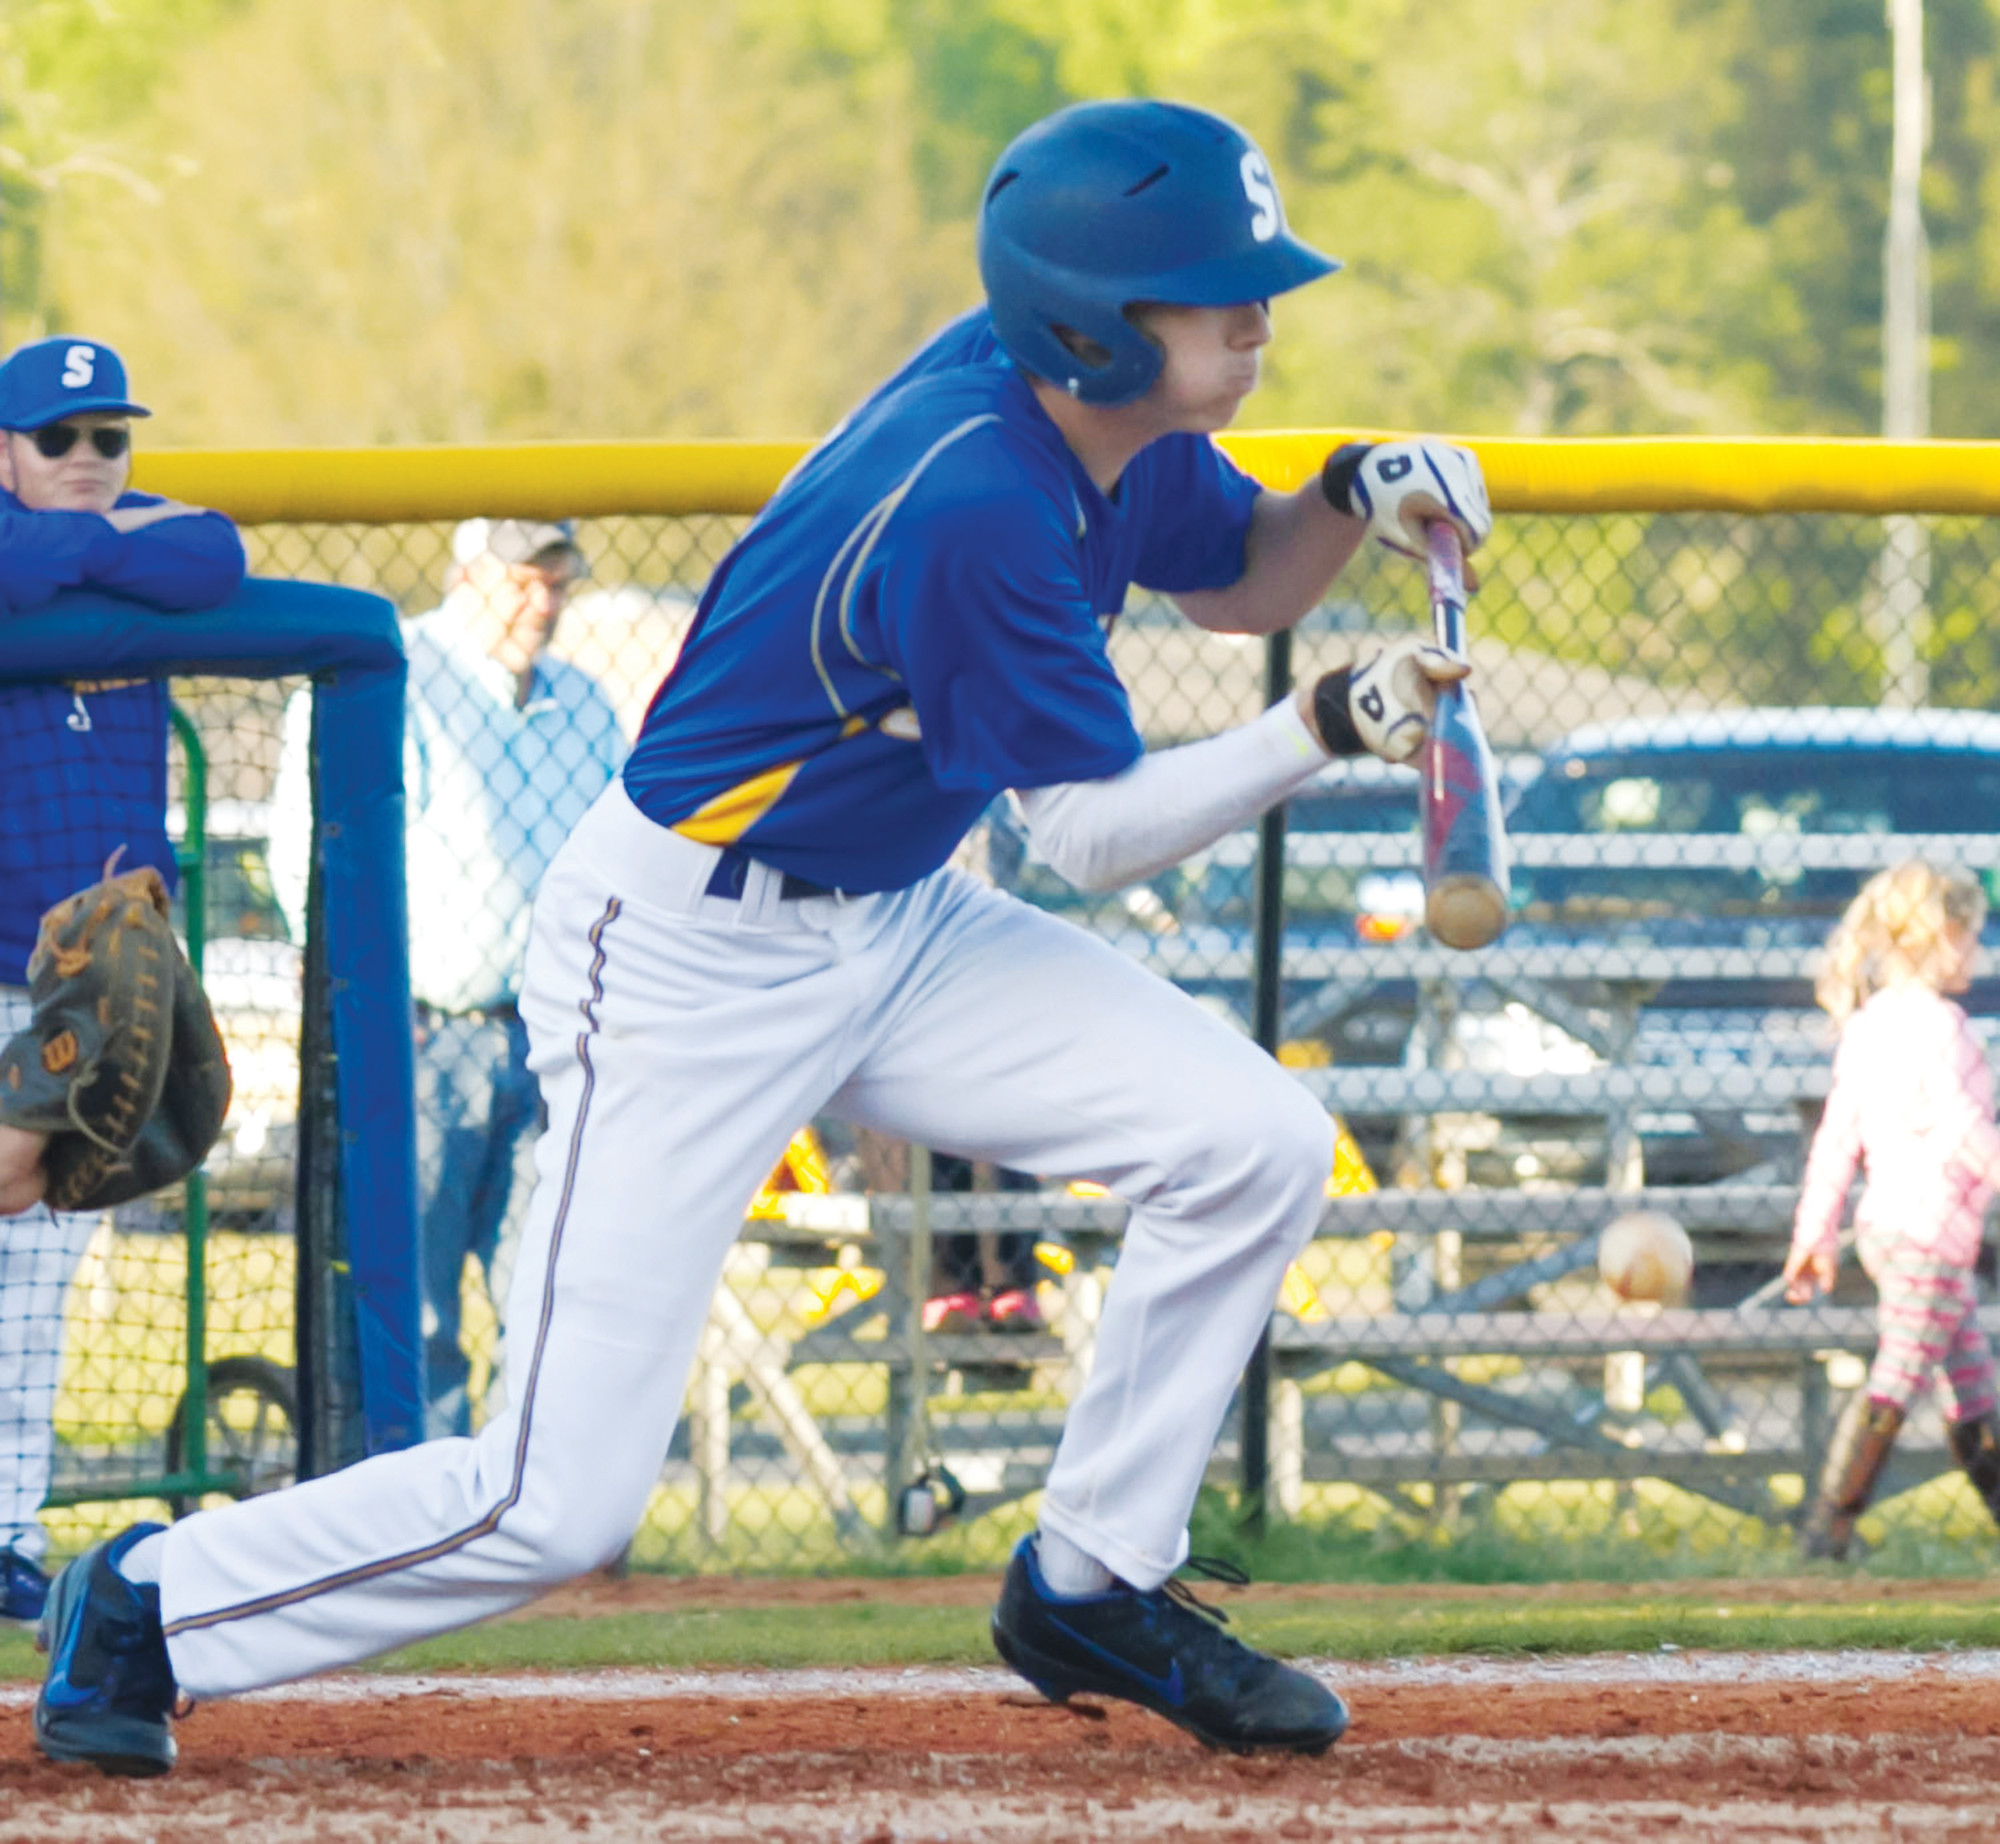 Sumter's Jackson Hoshour puts down a bunt in the Gamecocks' 3-2, 8-inning win over West Florence on Tuesday at Gamecock Field.